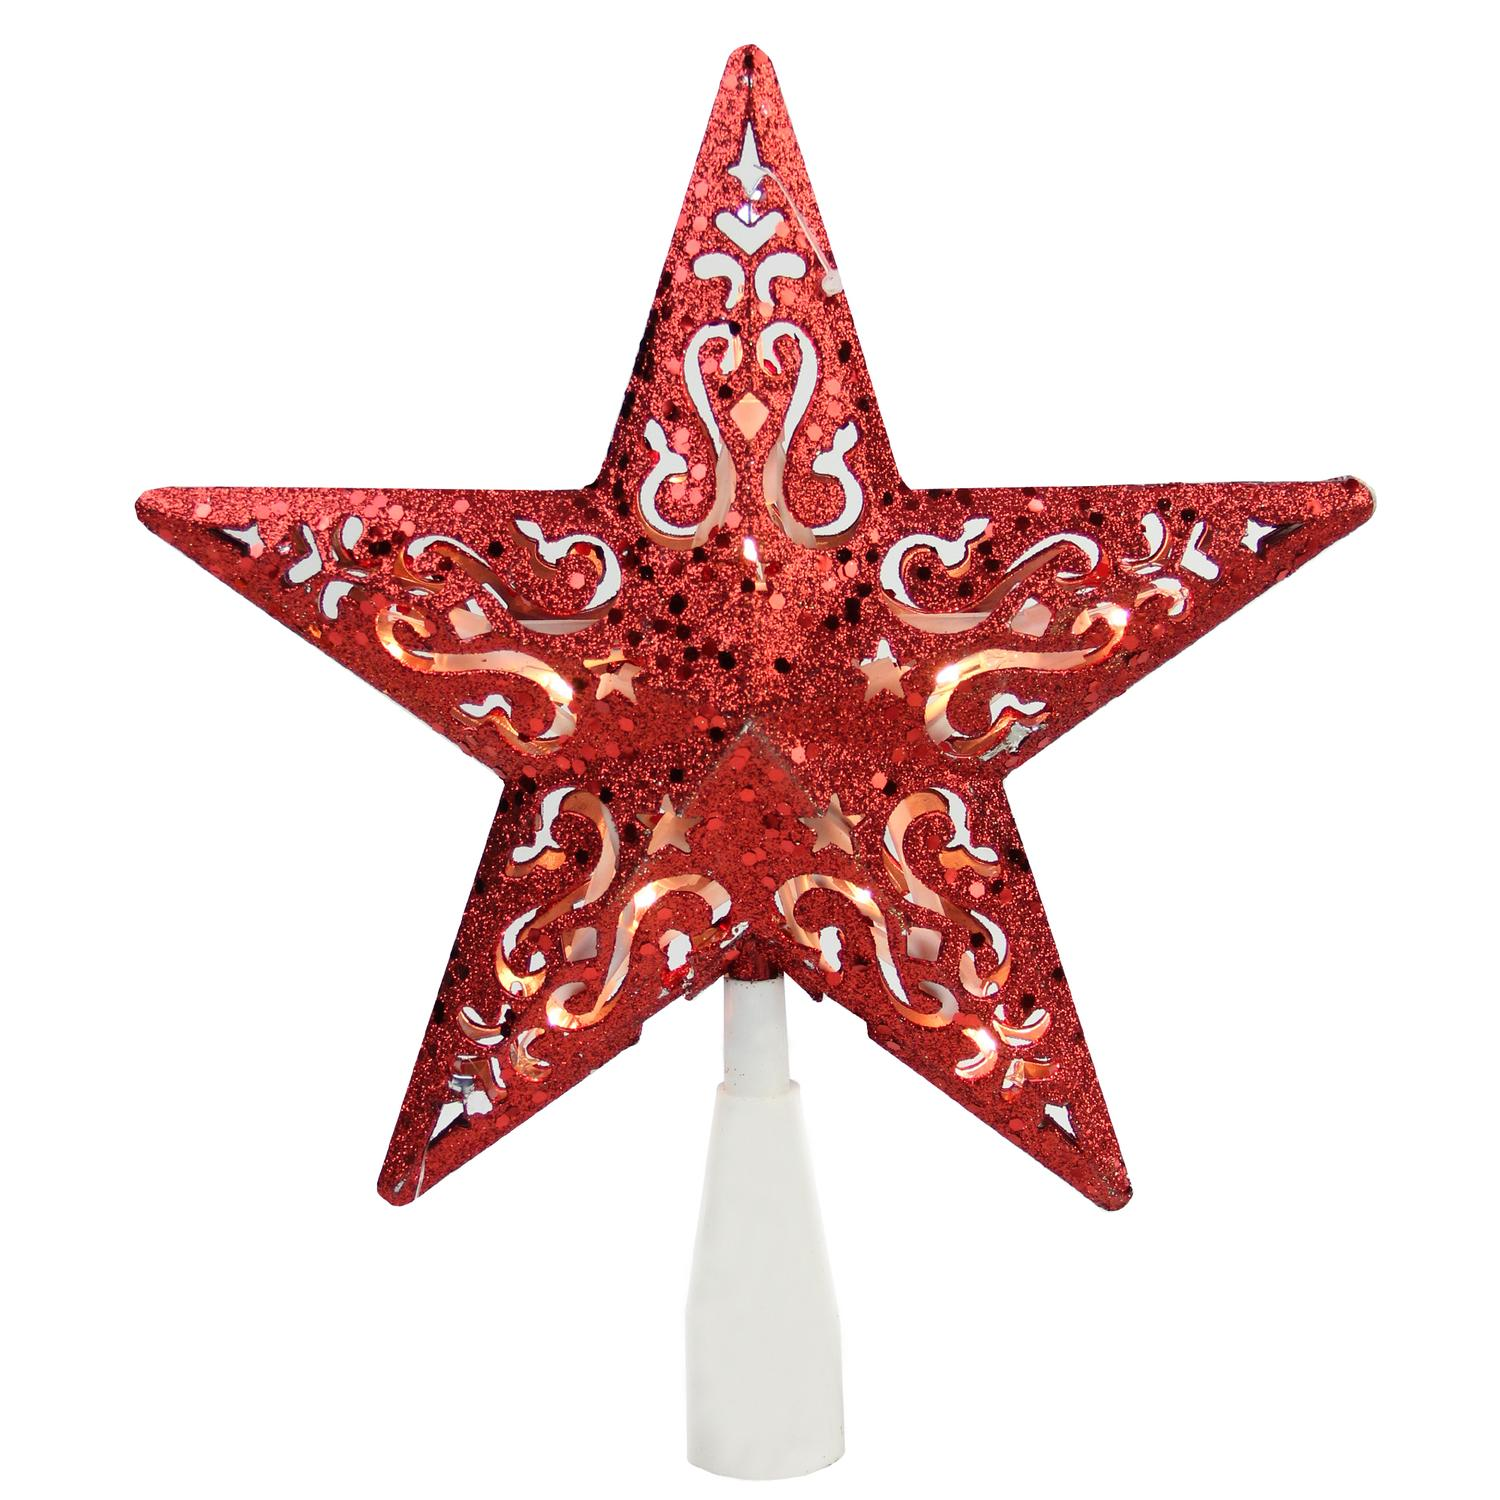 "8.5"" Red Glitter Star Cut-Out Design Christmas Tree Topper - Clear Lights"